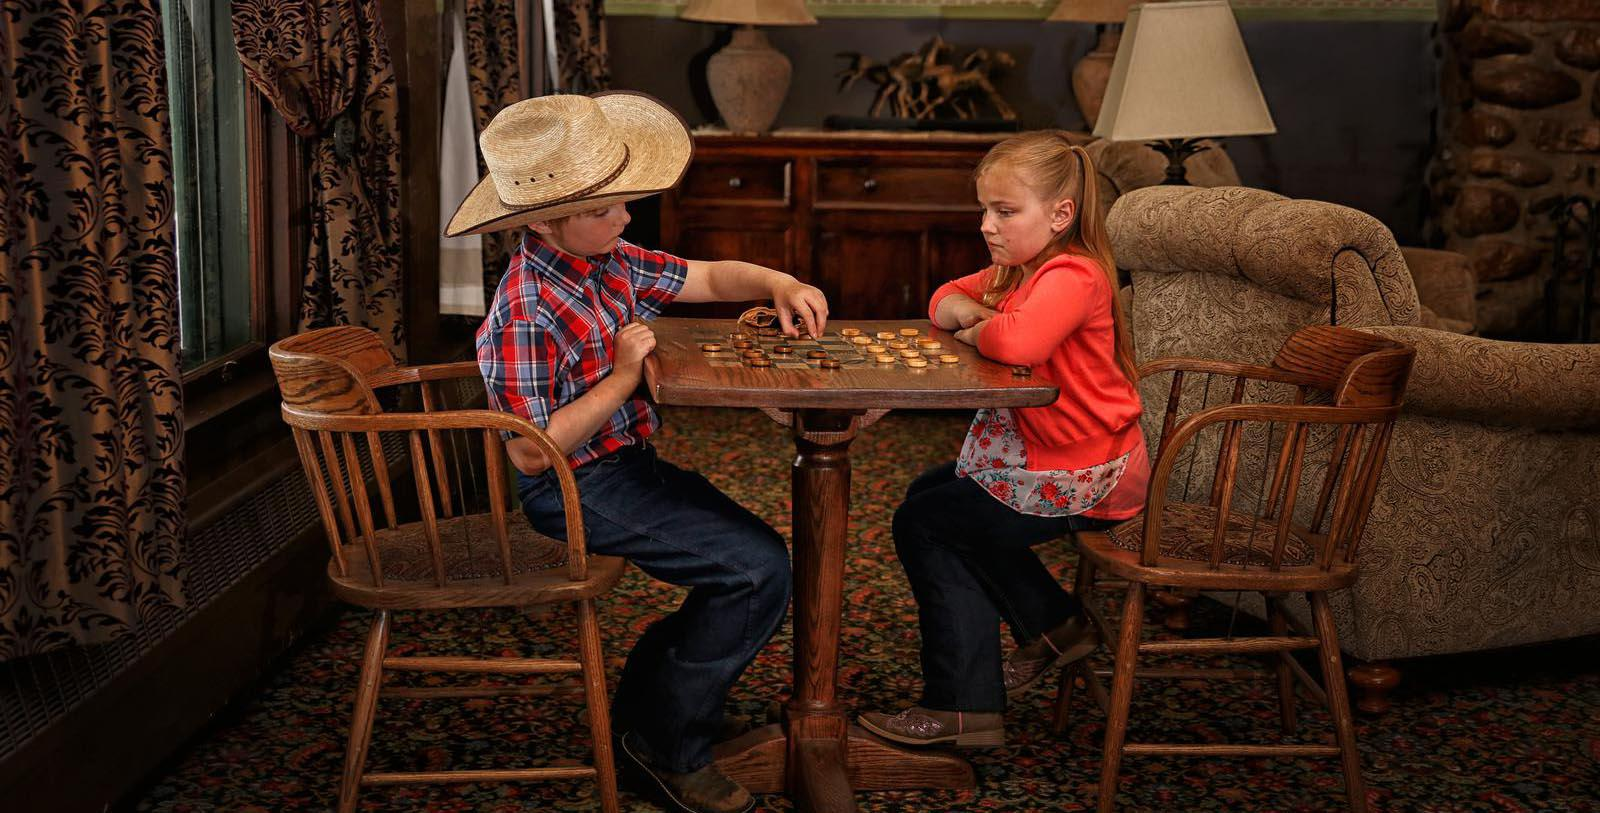 Image of Children Playing Checkers in Seating Area Sheridan Inn, 1893, Member of Historic Hotels of America, in Sheridan, Wyoming, Explore